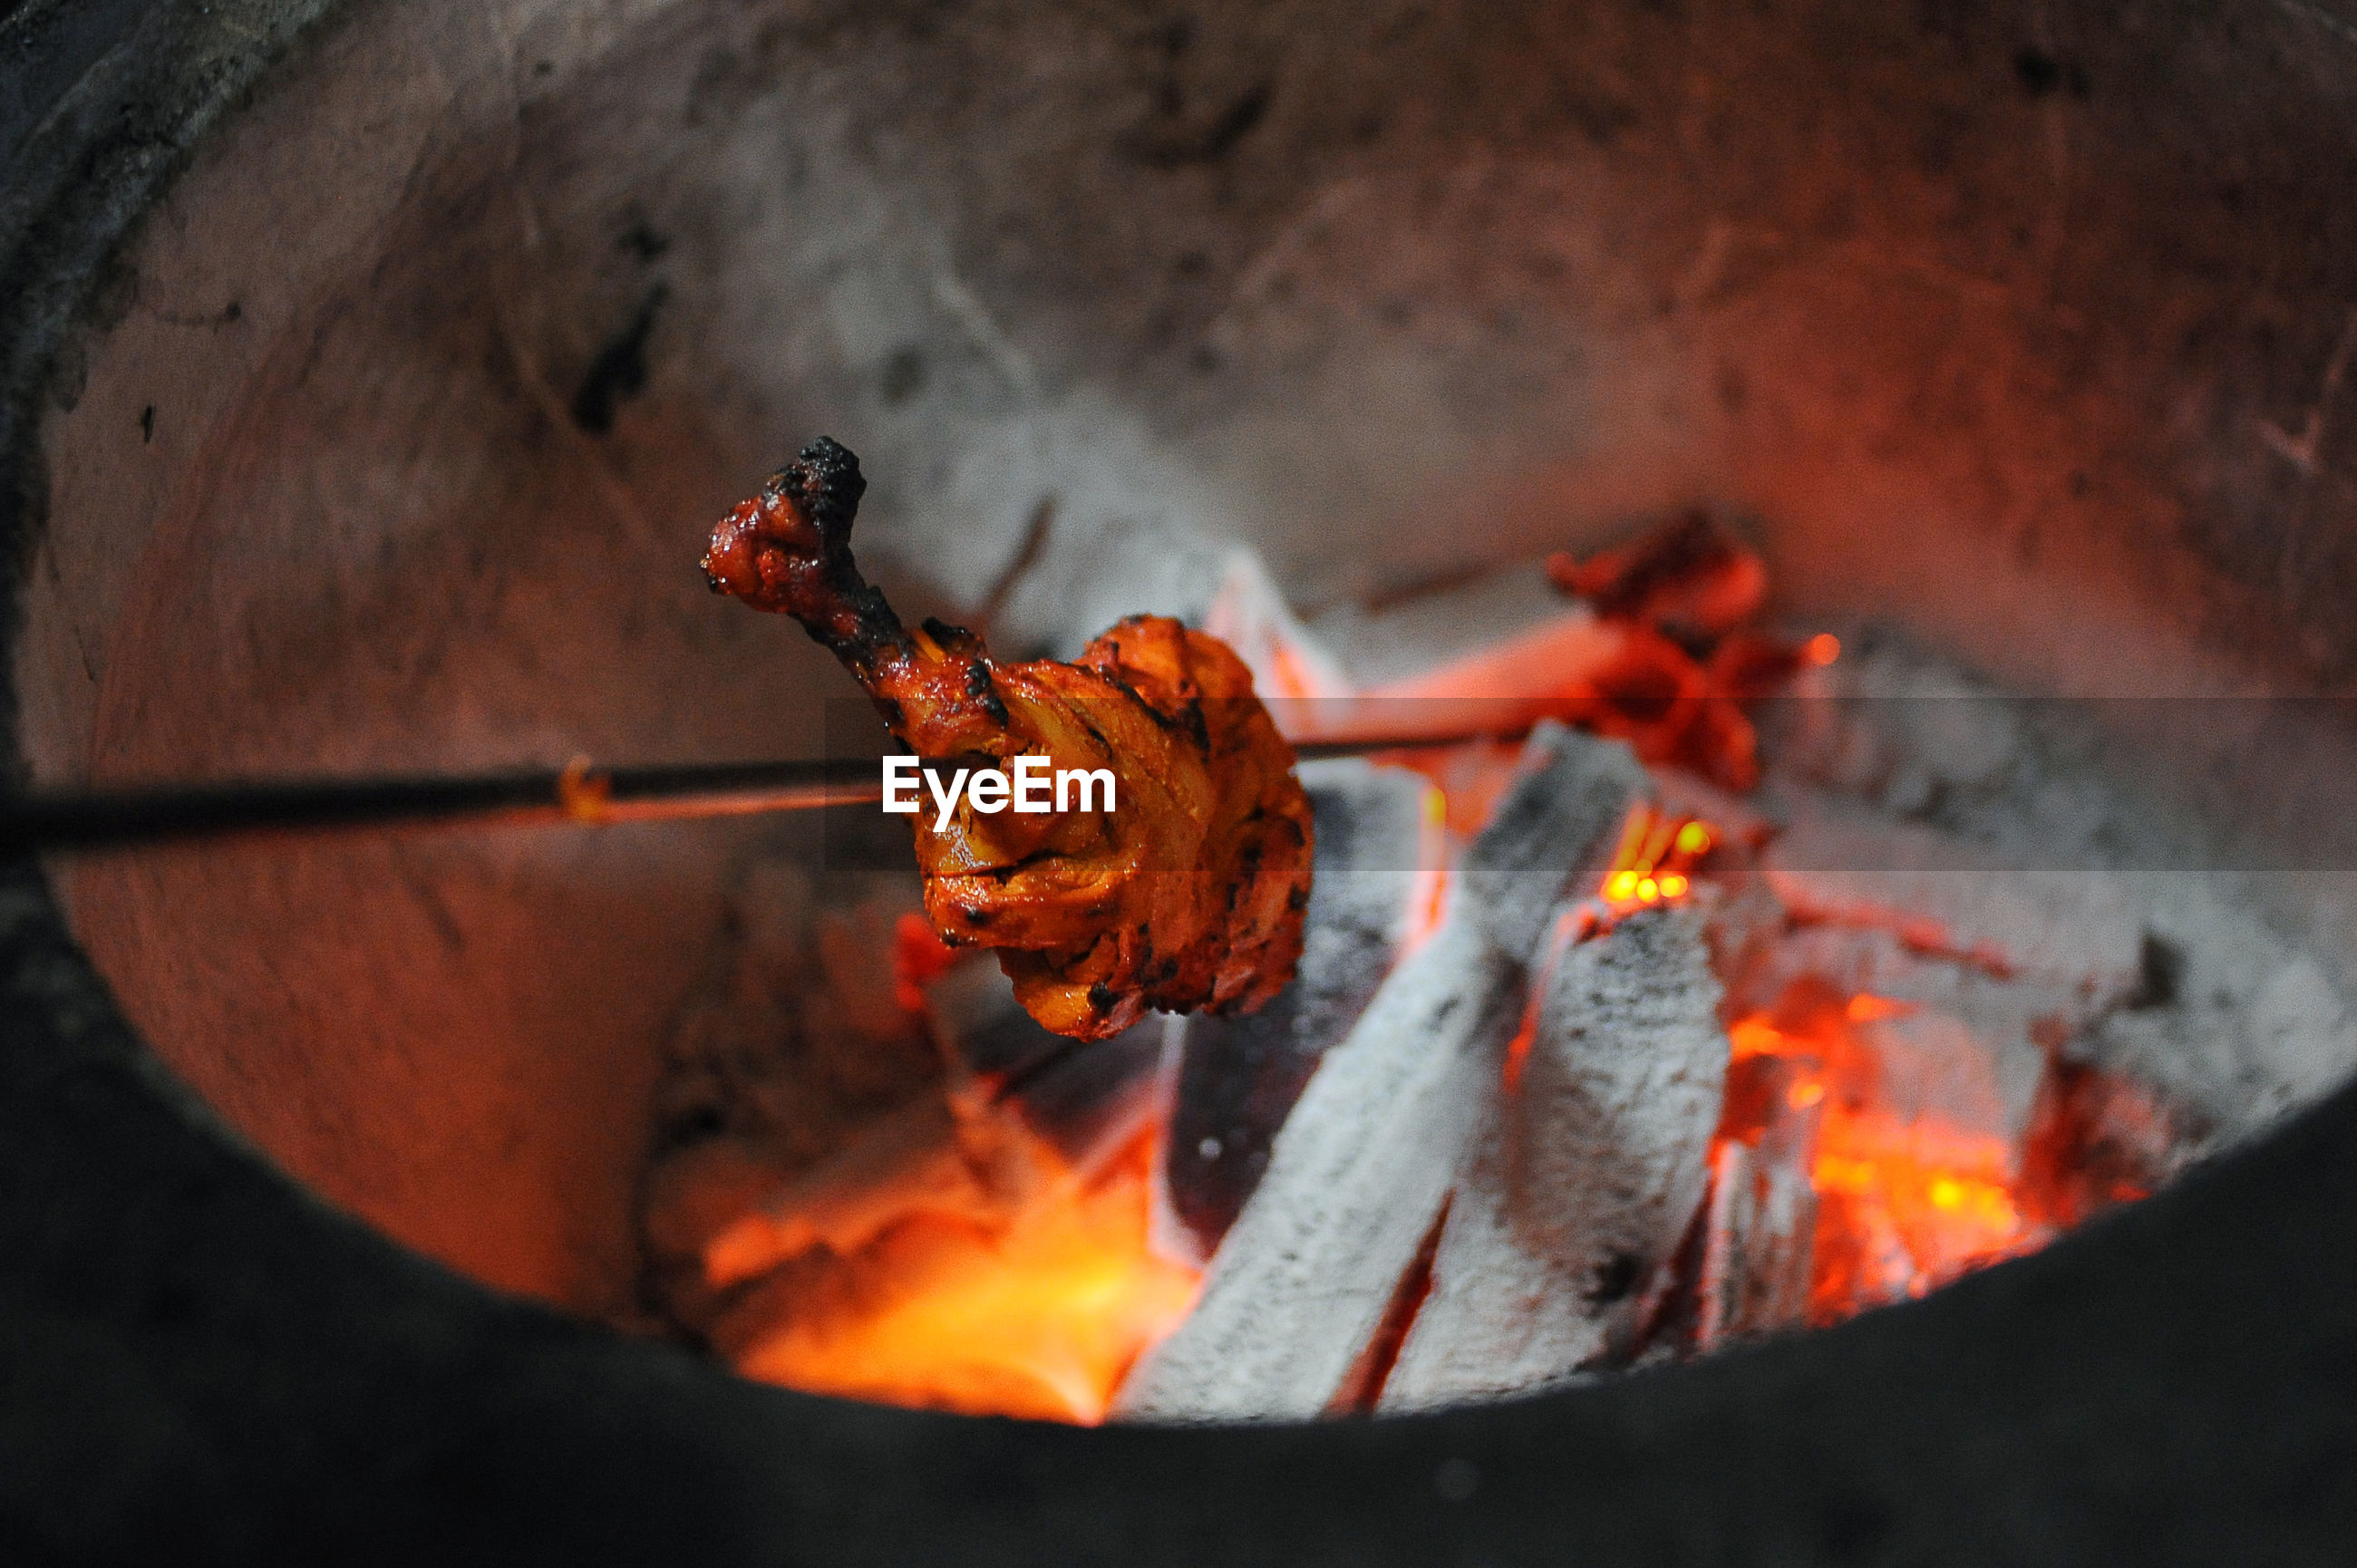 Close-up of chicken cooking in tandoor